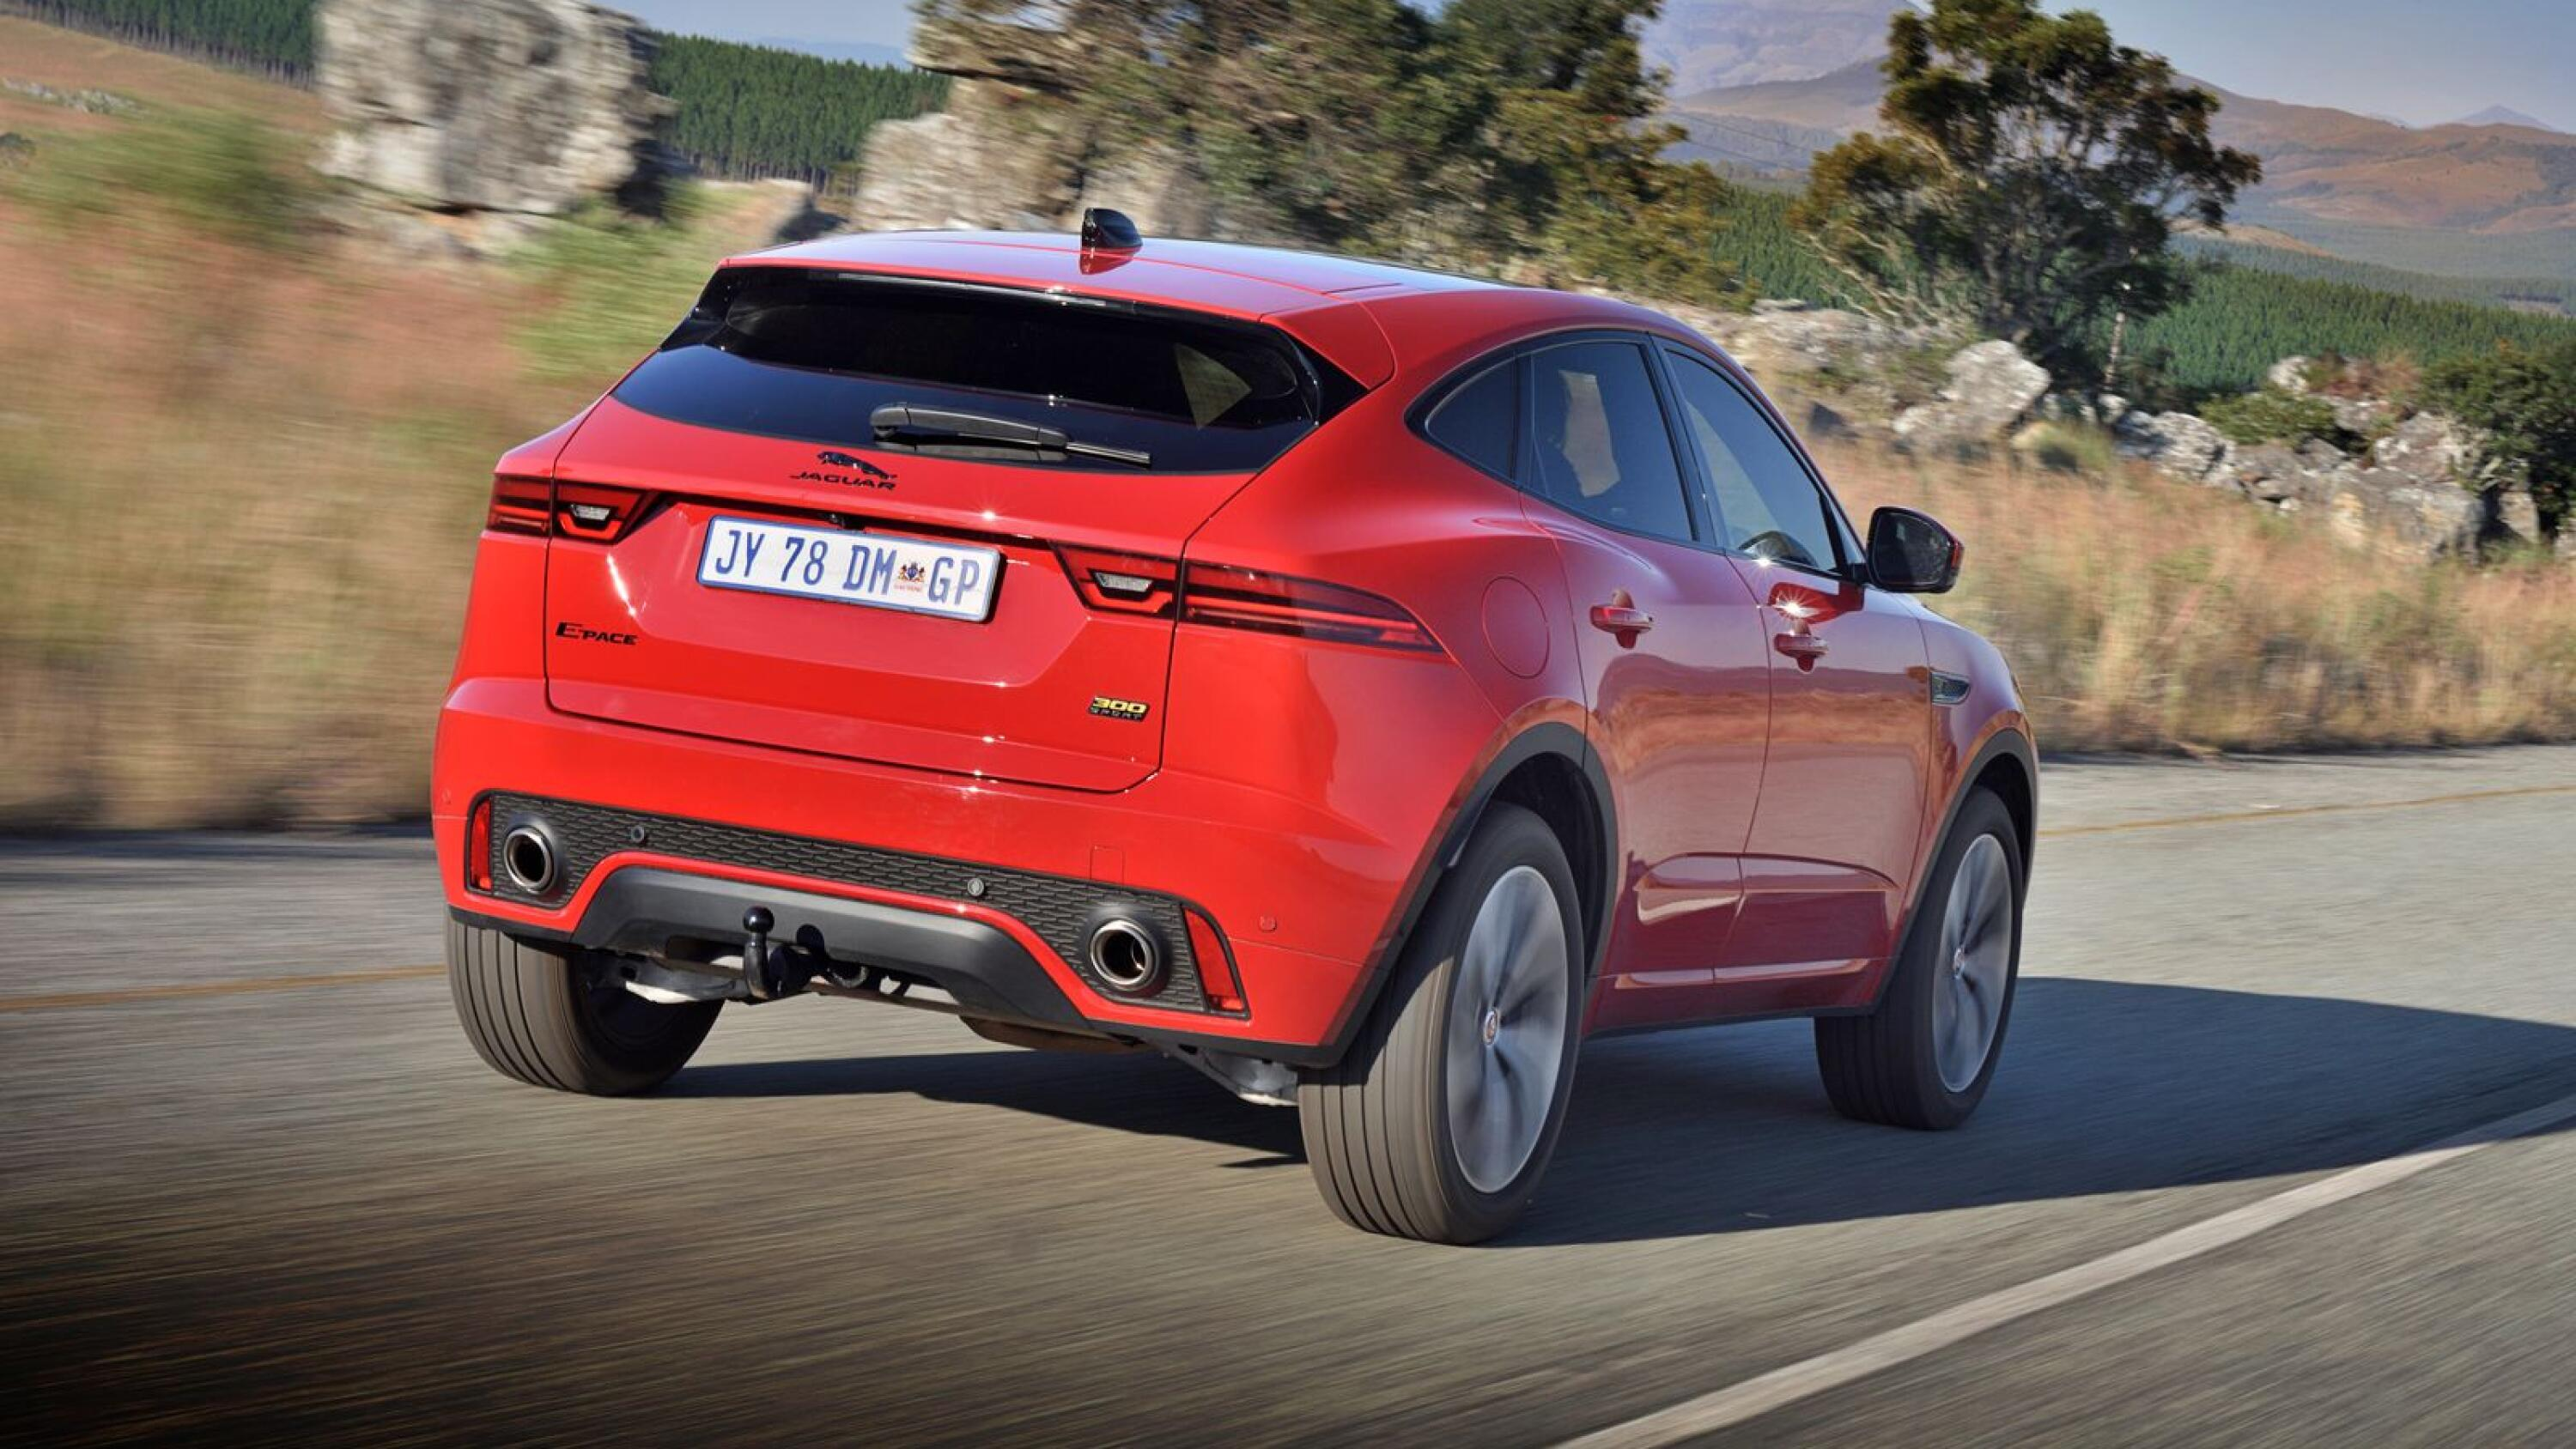 2021 Jaguar E-Pace comes as a plug-in hybrid (PHEV) or you can go for the thundering 221kW P300 Sport version shown here